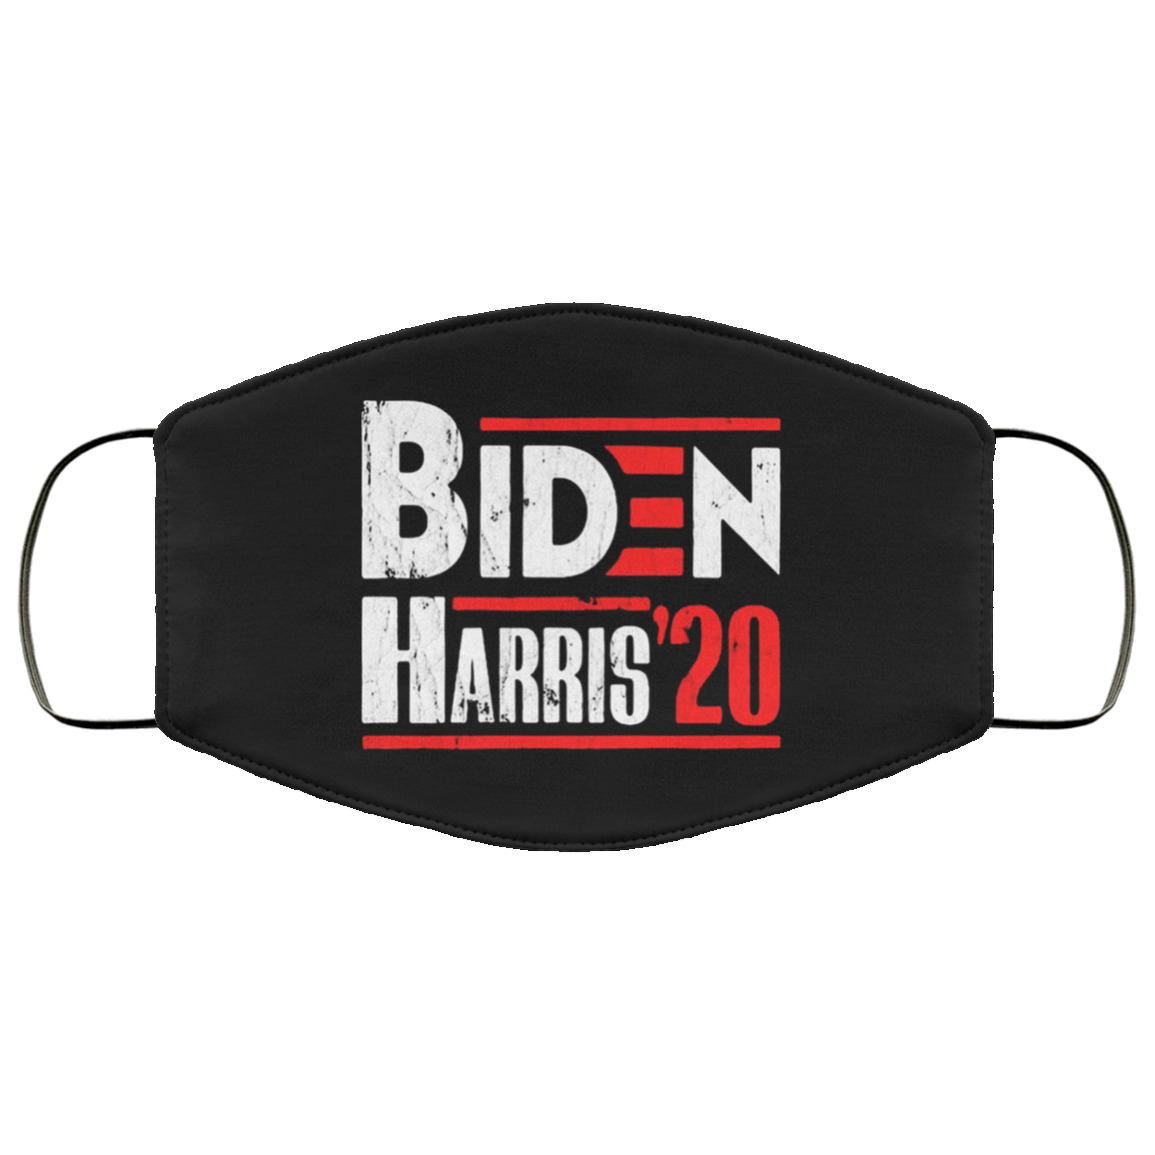 Biden Harris Face Mask Vote Biden Harris 2020 Campaign Face Mask For Joe Biden Supporters